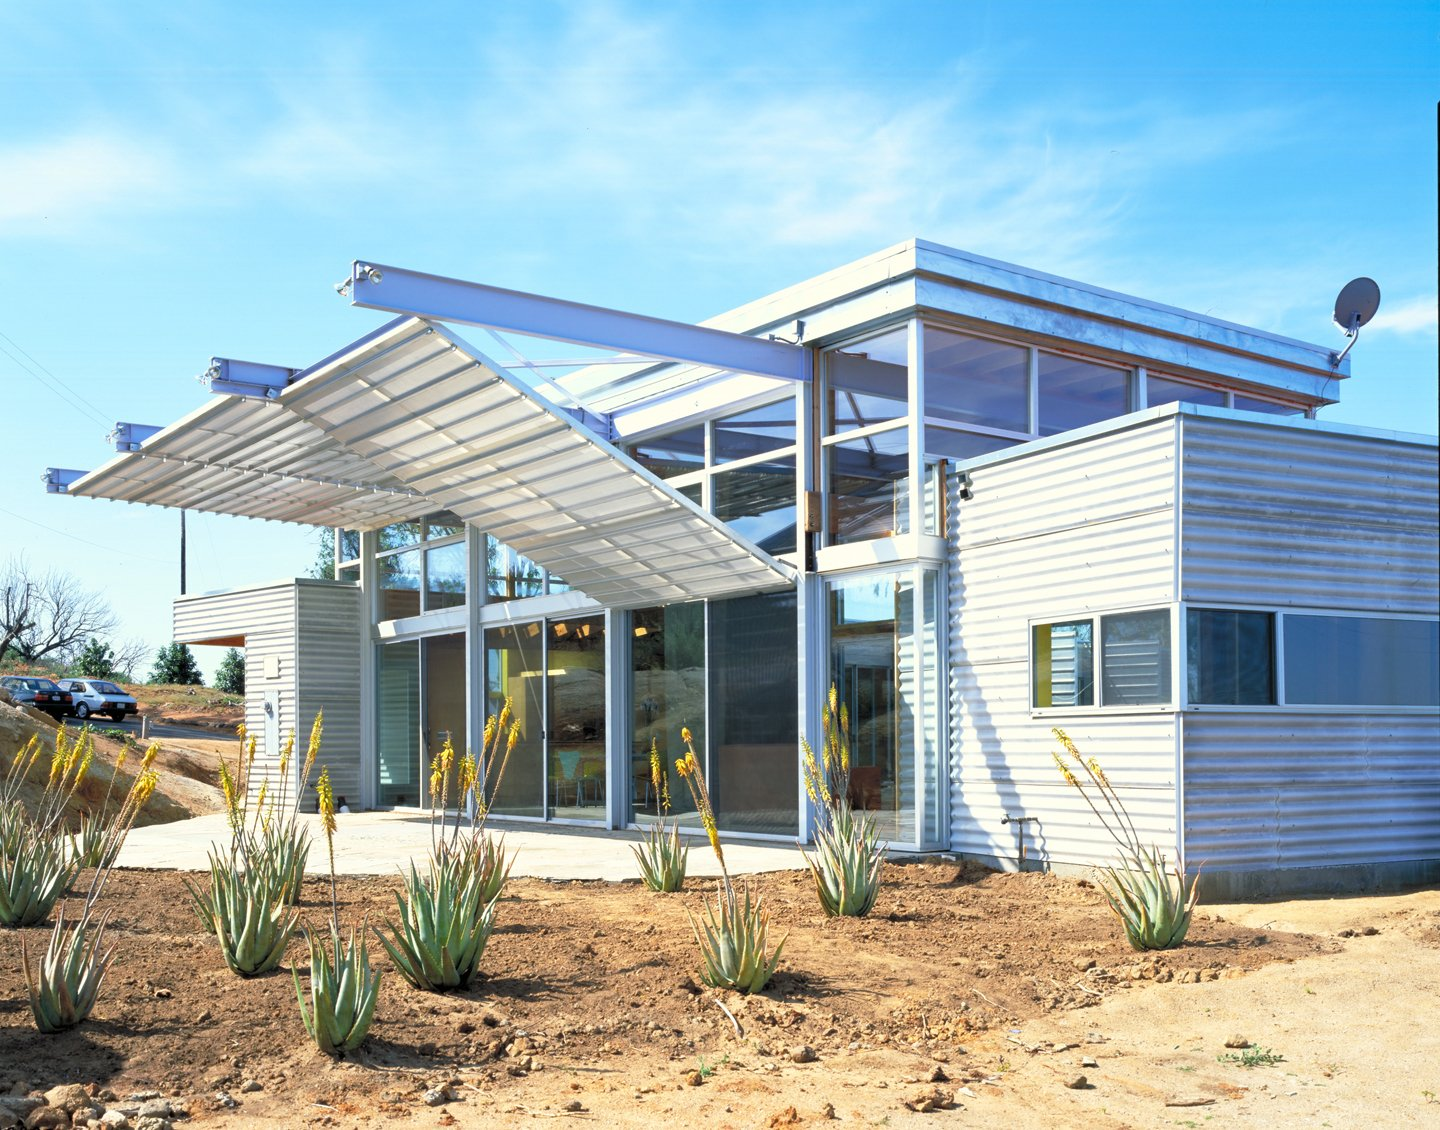 #outside #exterior #outdoor #landscape #desert #succulent #eco #green #sustainable #ValleyCenter #California #KevinDalyArchitects Valley Center House by Kevin Daly Architects